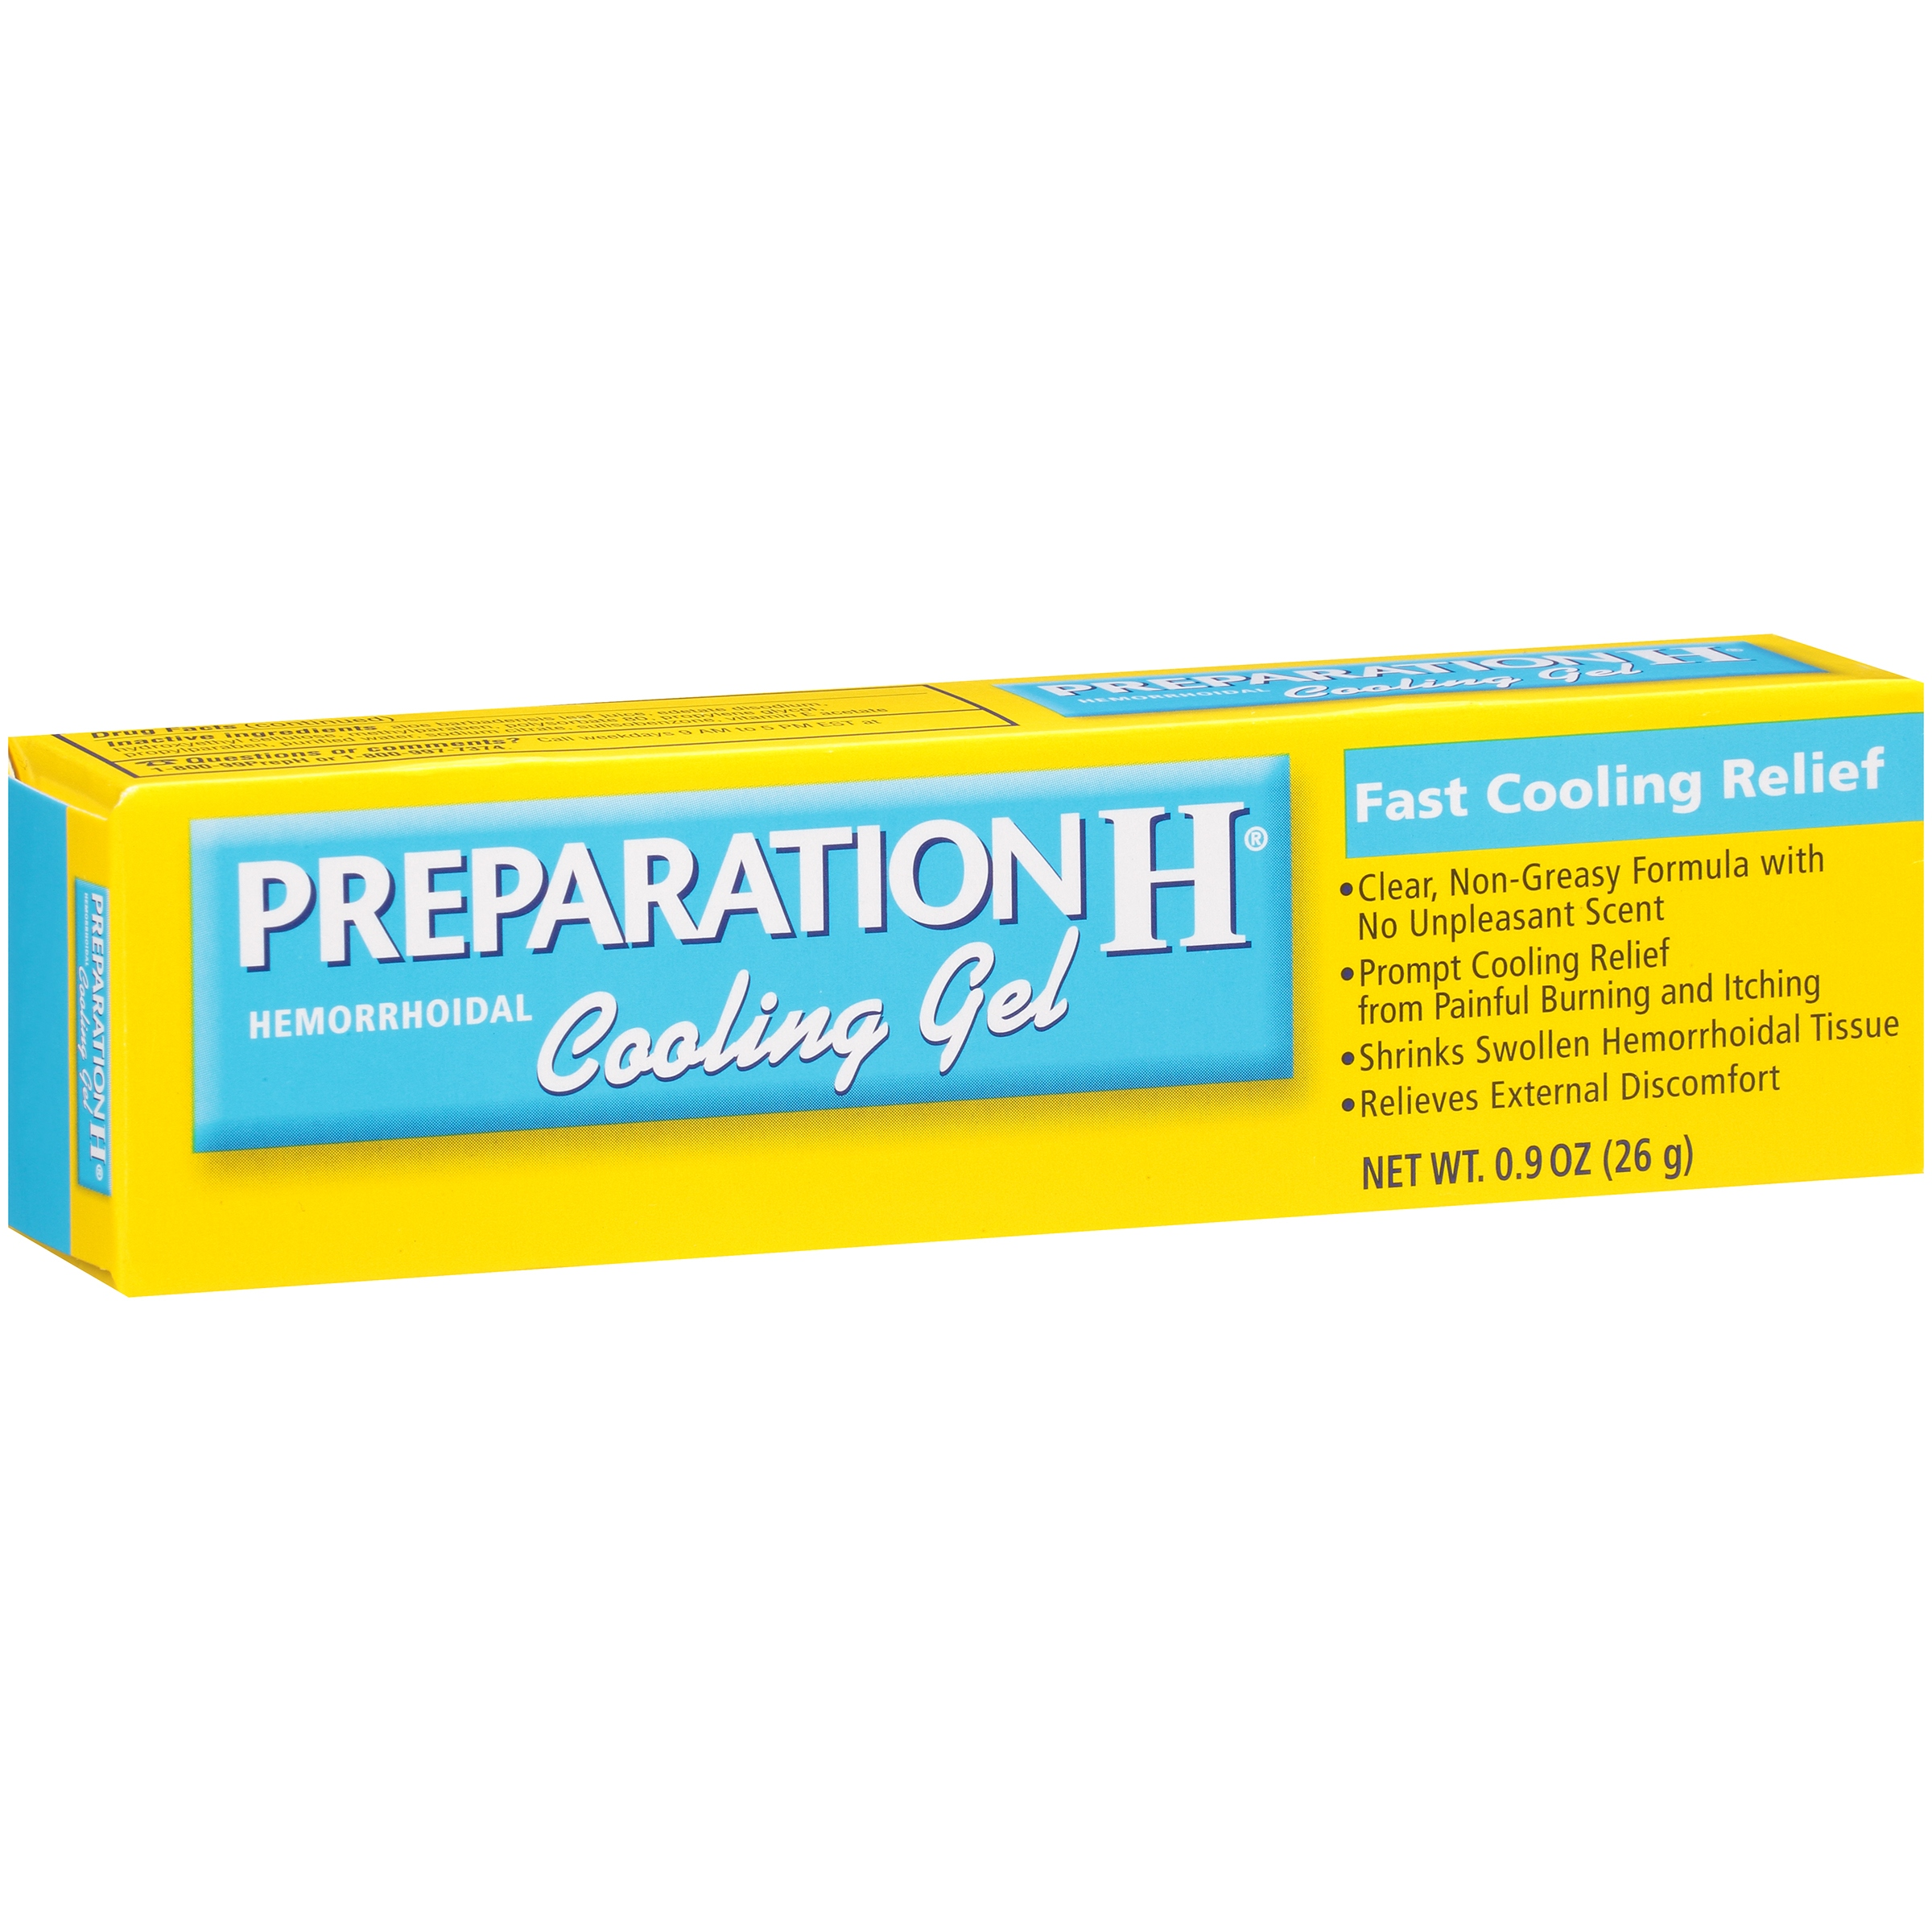 Preparation H Hemorrhoid Symptom Treatment Cooling Gel (0.9 Ounce), Fast Discomfort Relief with Vitamin E and Aloe, Tube